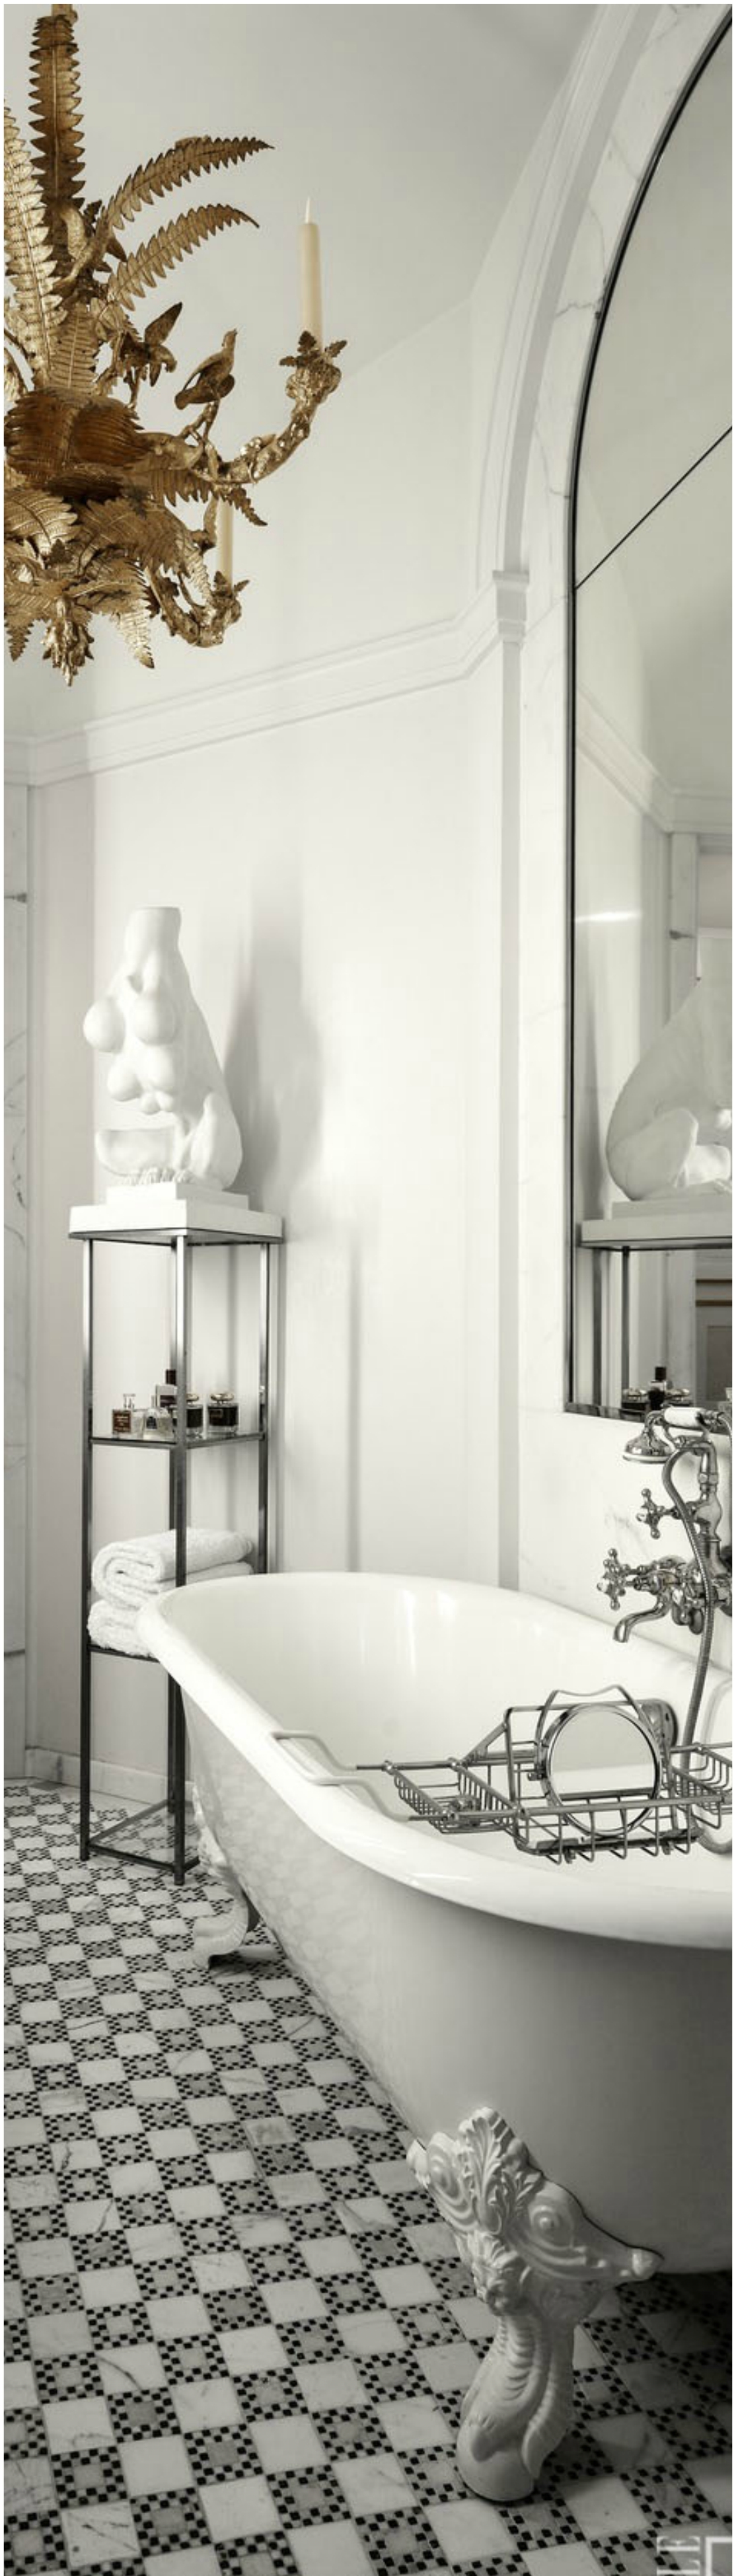 Beautiful Eclectic Bathtub Design dwellingdecor